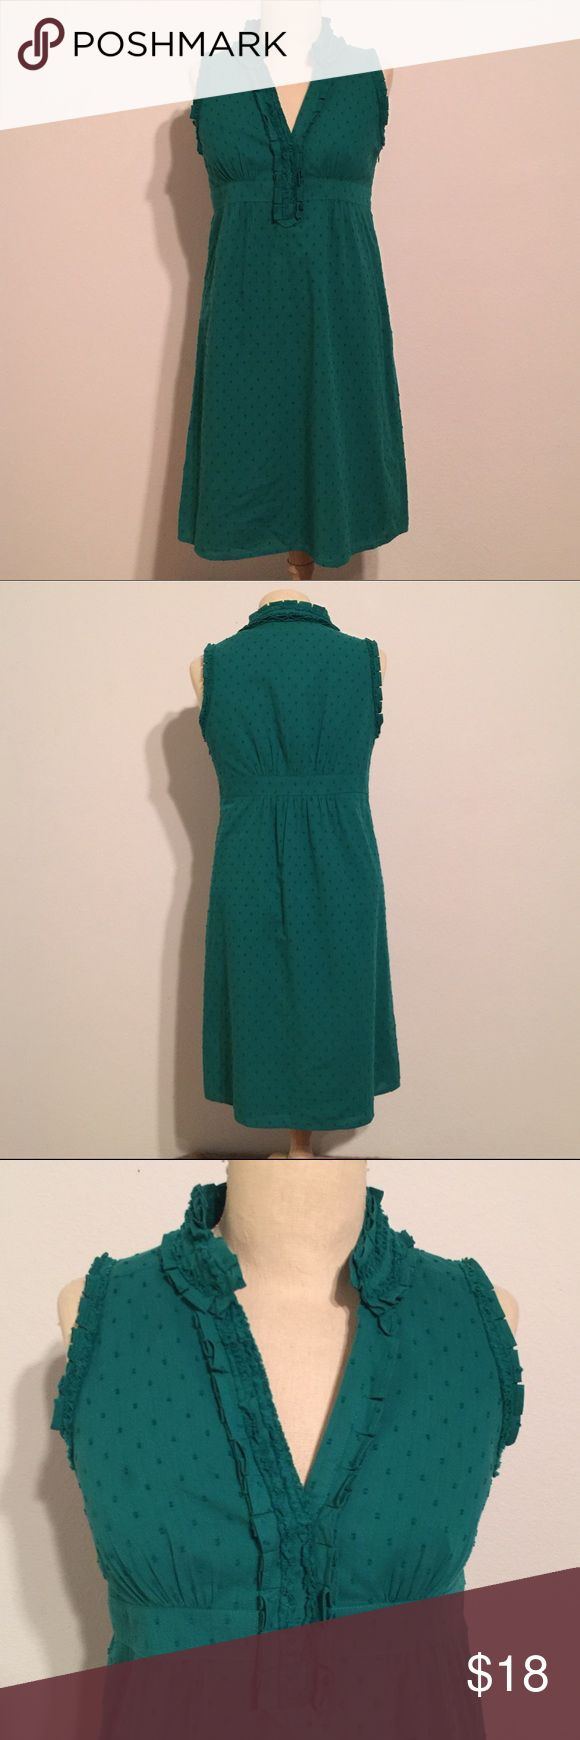 Ann Taylor Loft Sweet Green Cotton Dress 2P Petite and sweet! Very cute and lightweight green dress! Perfect for upcoming spring and summer. Gently used condition. Zip side. LOFT Dresses